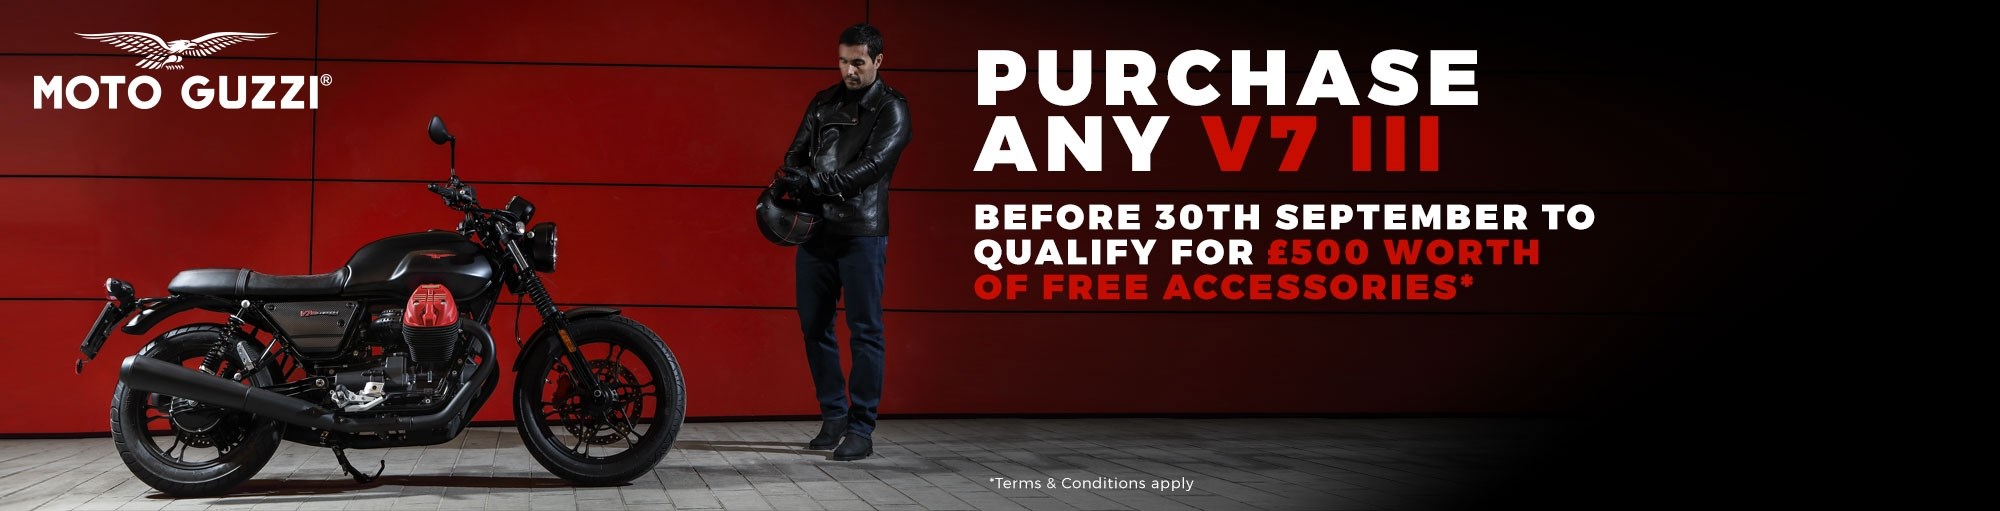 Buy a new Moto Guzzi V7 III & get £500 worth of free accessories